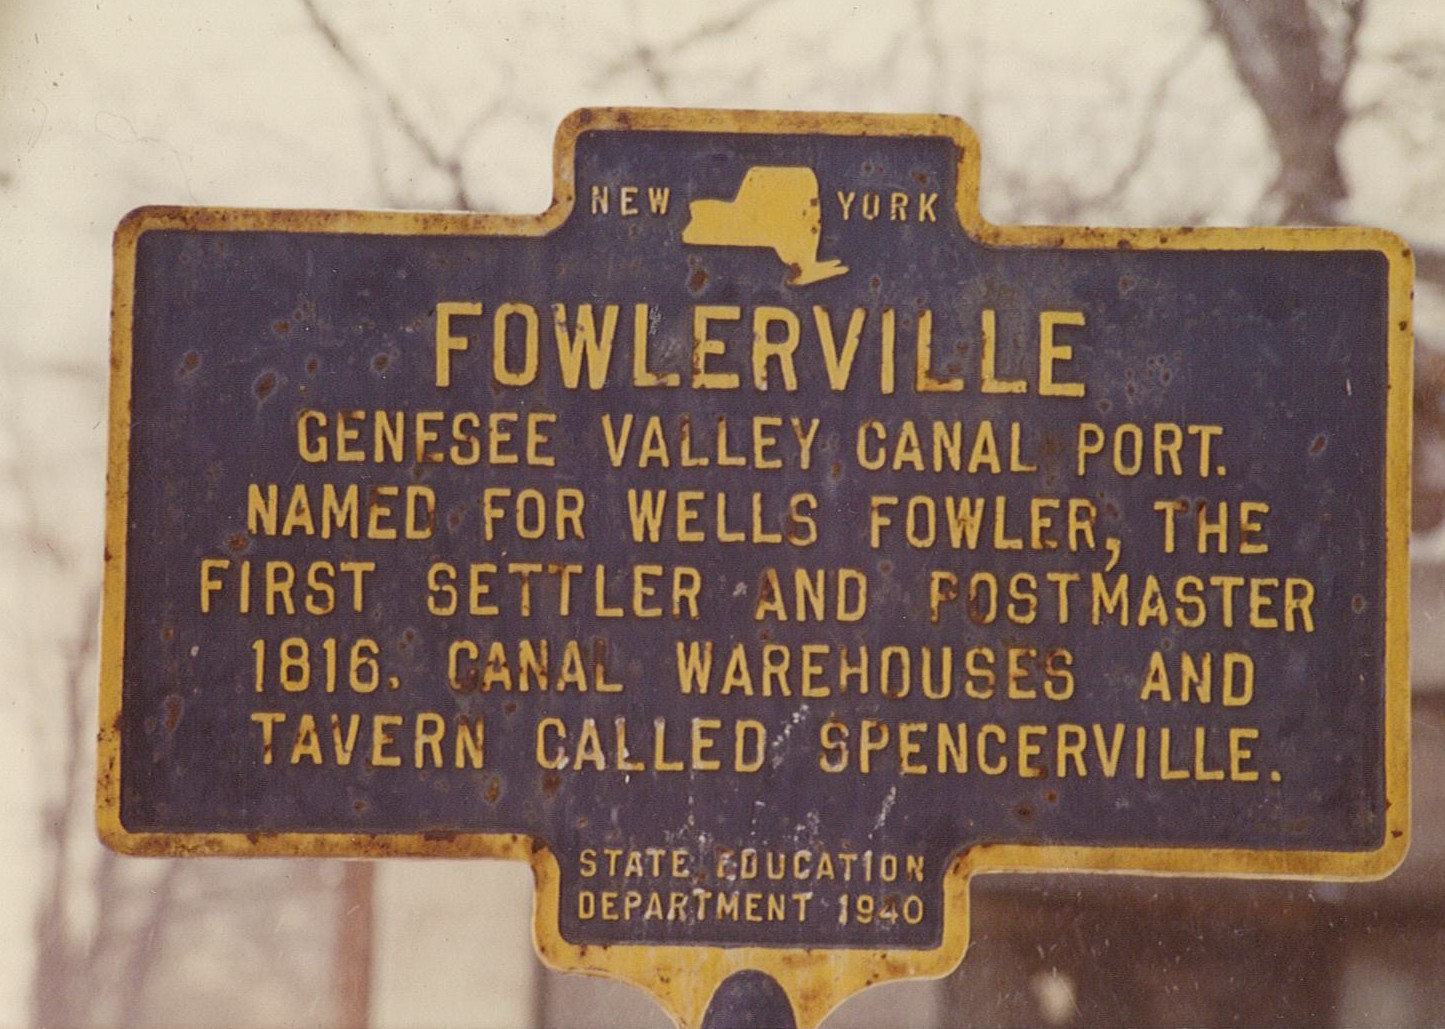 Image of blue and yellow historical marker sign for hamlet of Fowlerville